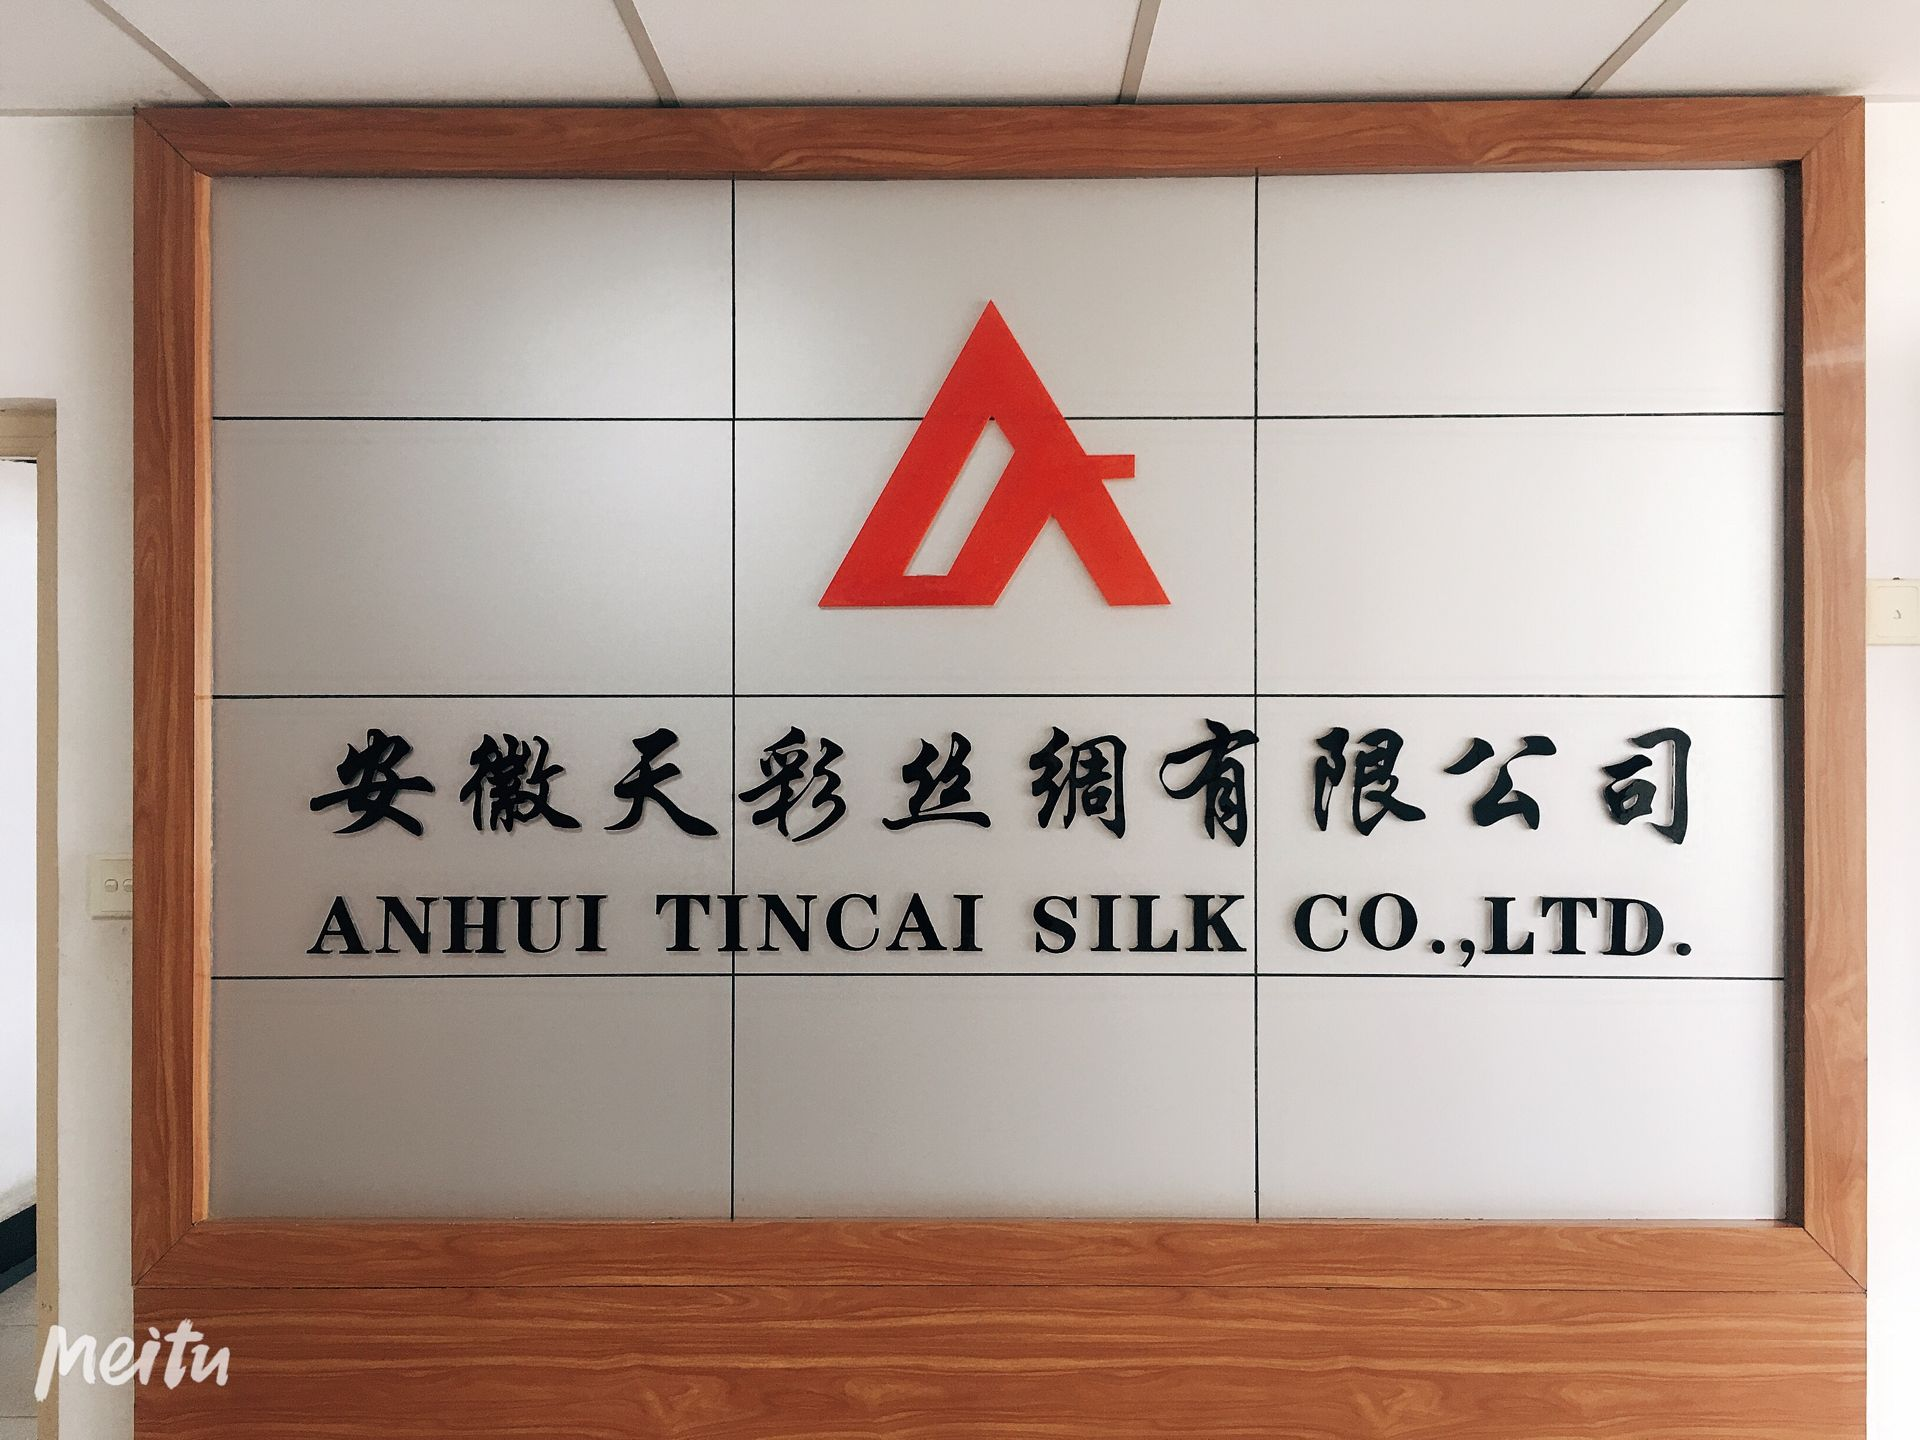 ANHUI TINCAI SILK CO.,LTD.